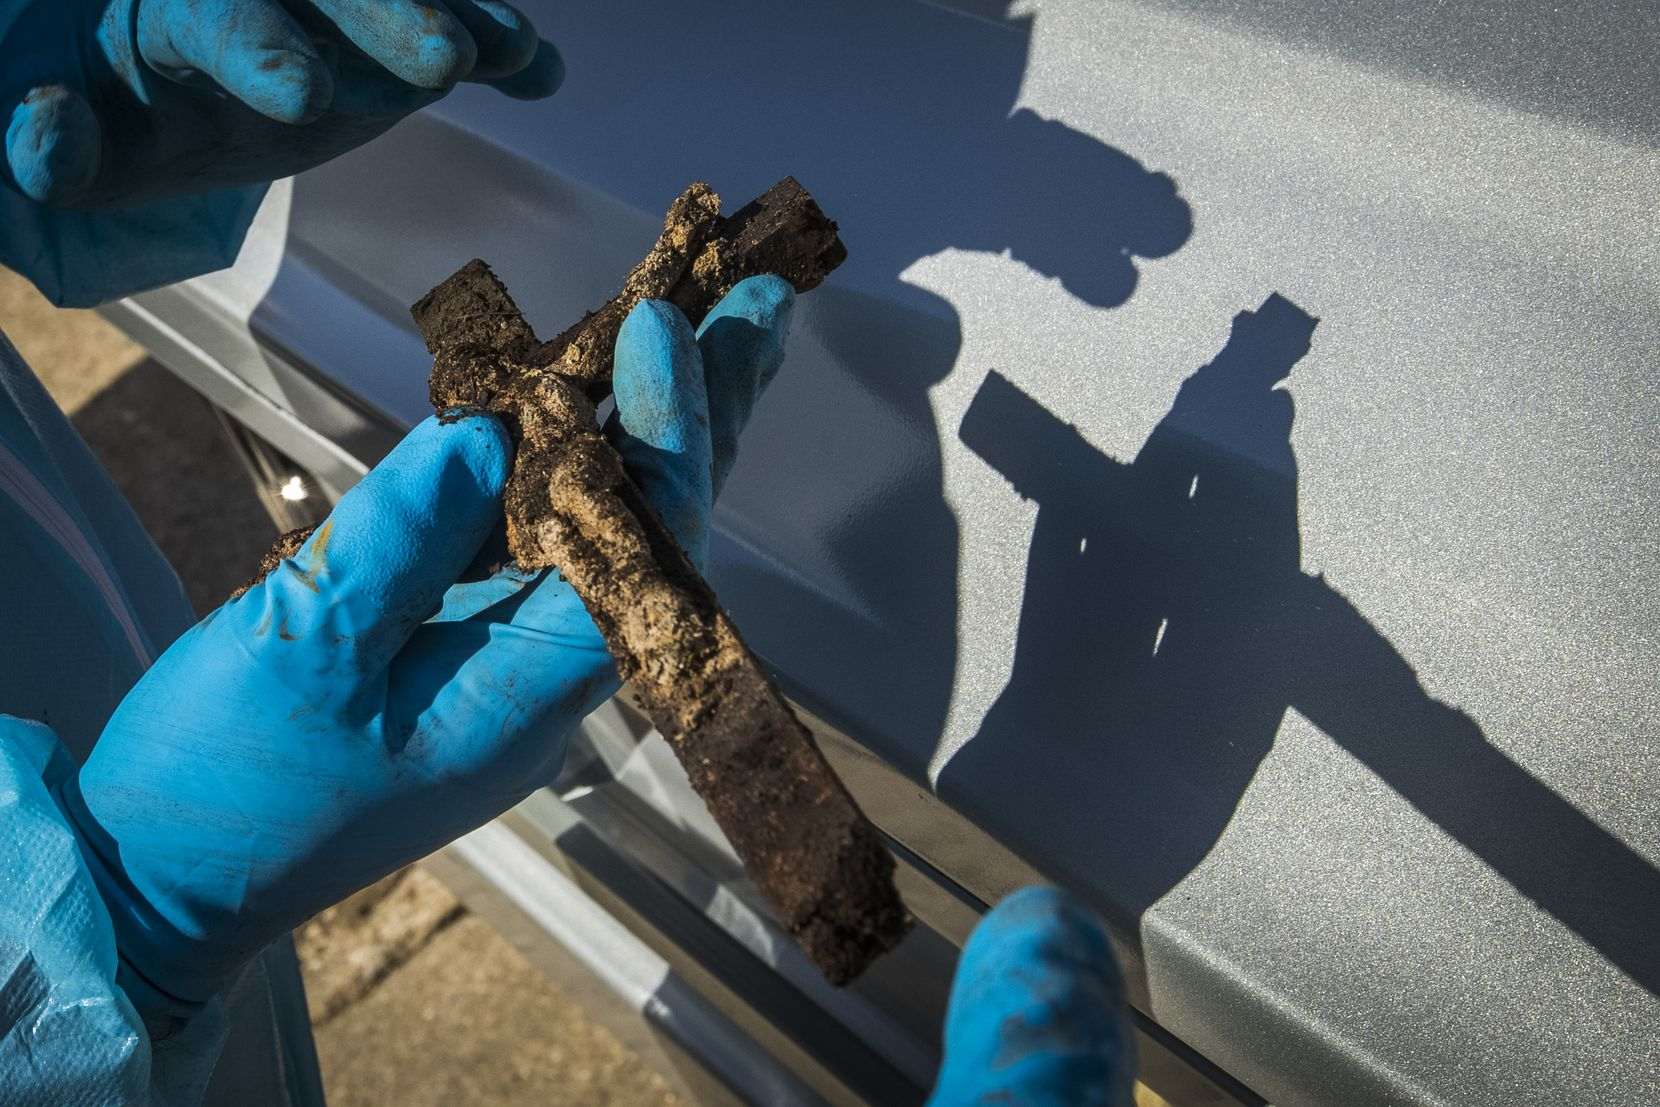 Funeral director Chris Taylor found this crucifix still intact inside the casket of the Rev. Damian Szodenyi, who was buried with it in 1998.